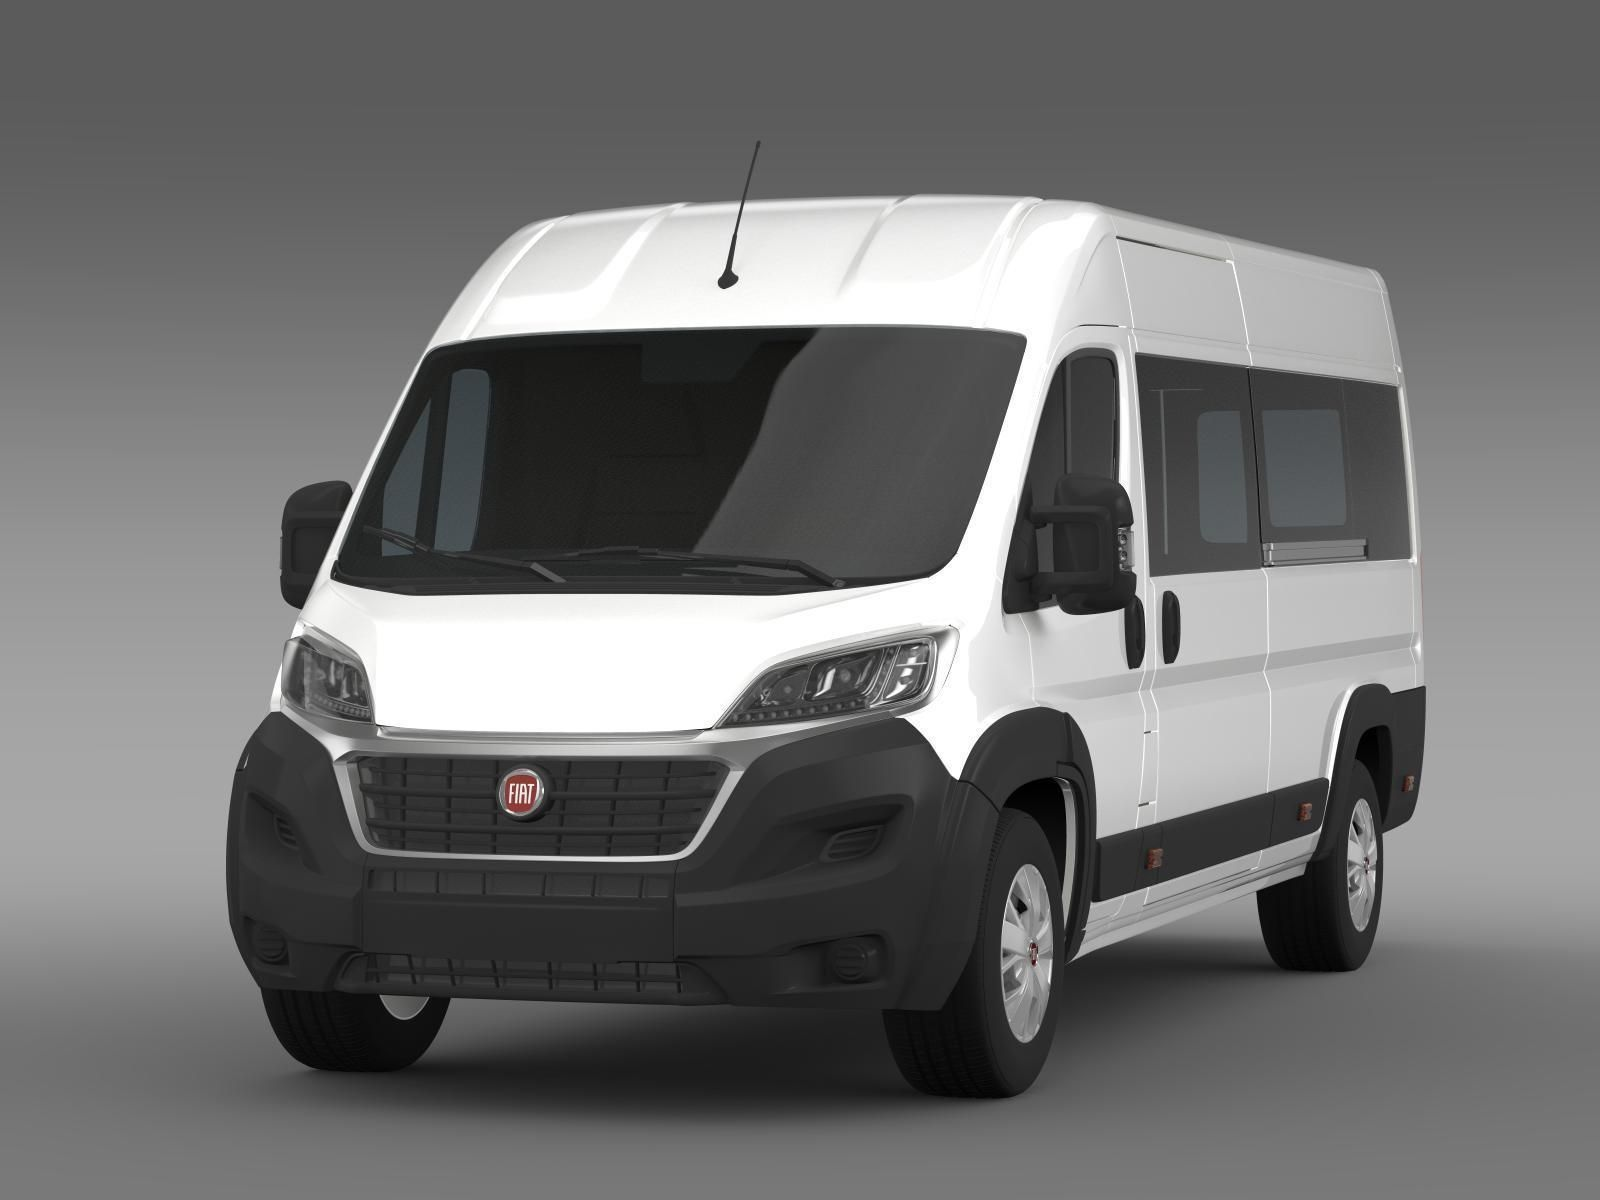 fiat ducato maxi minibus 2015 3d model max obj 3ds fbx. Black Bedroom Furniture Sets. Home Design Ideas